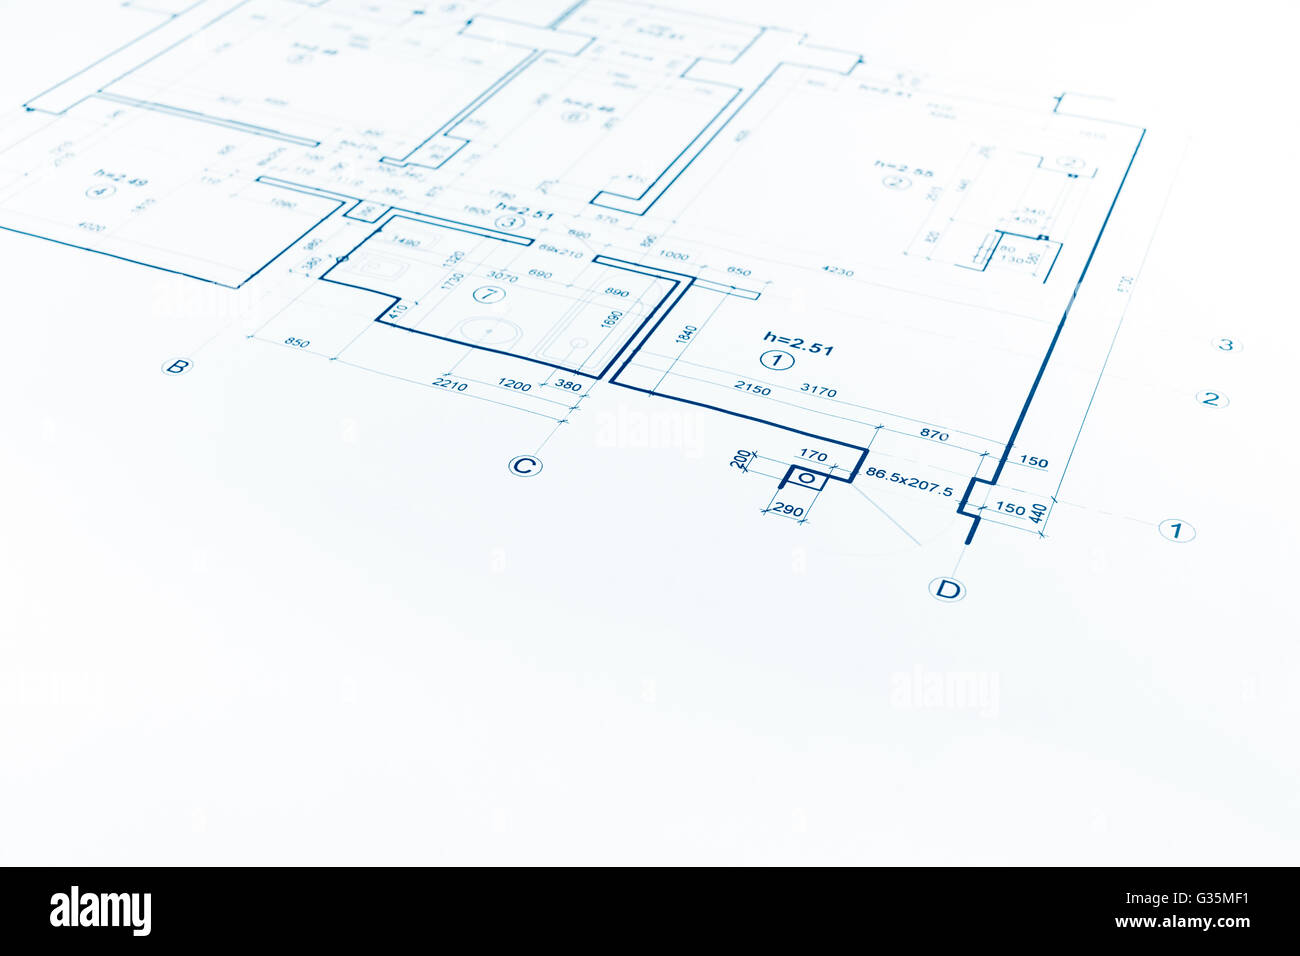 architectural background with floor plan blueprint technical